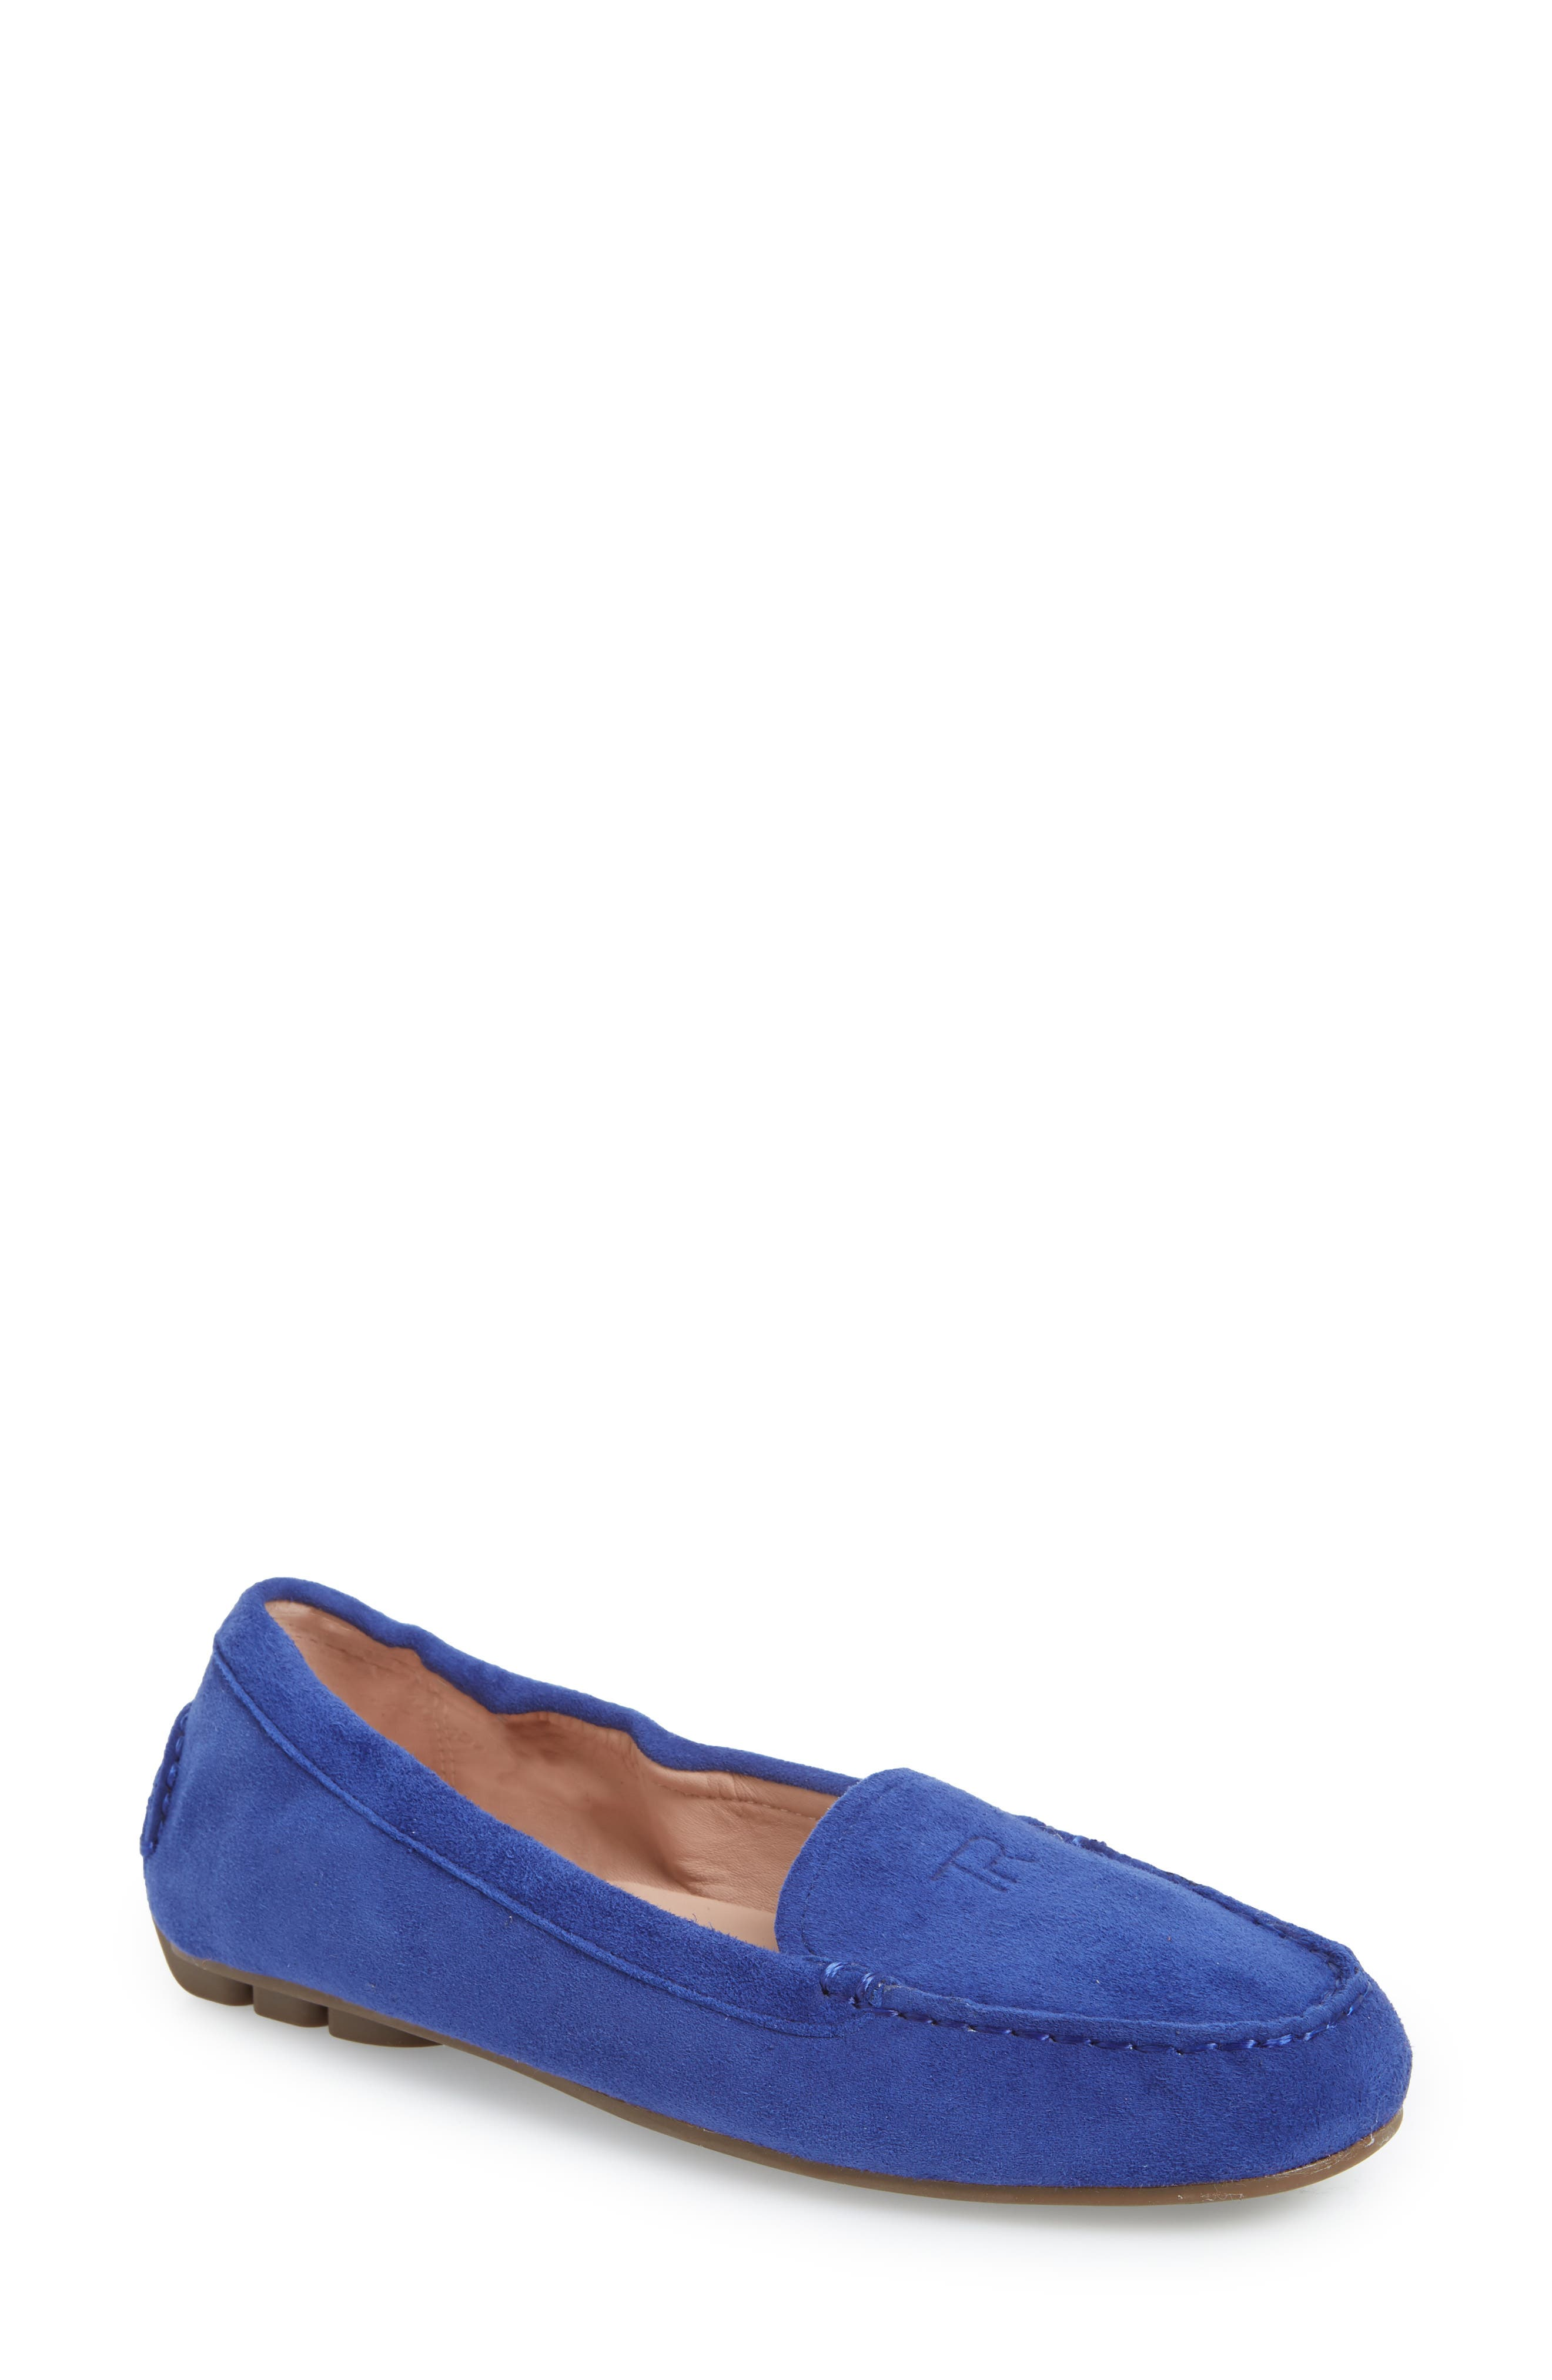 Kristine Loafer,                             Main thumbnail 1, color,                             BLUE SUEDE